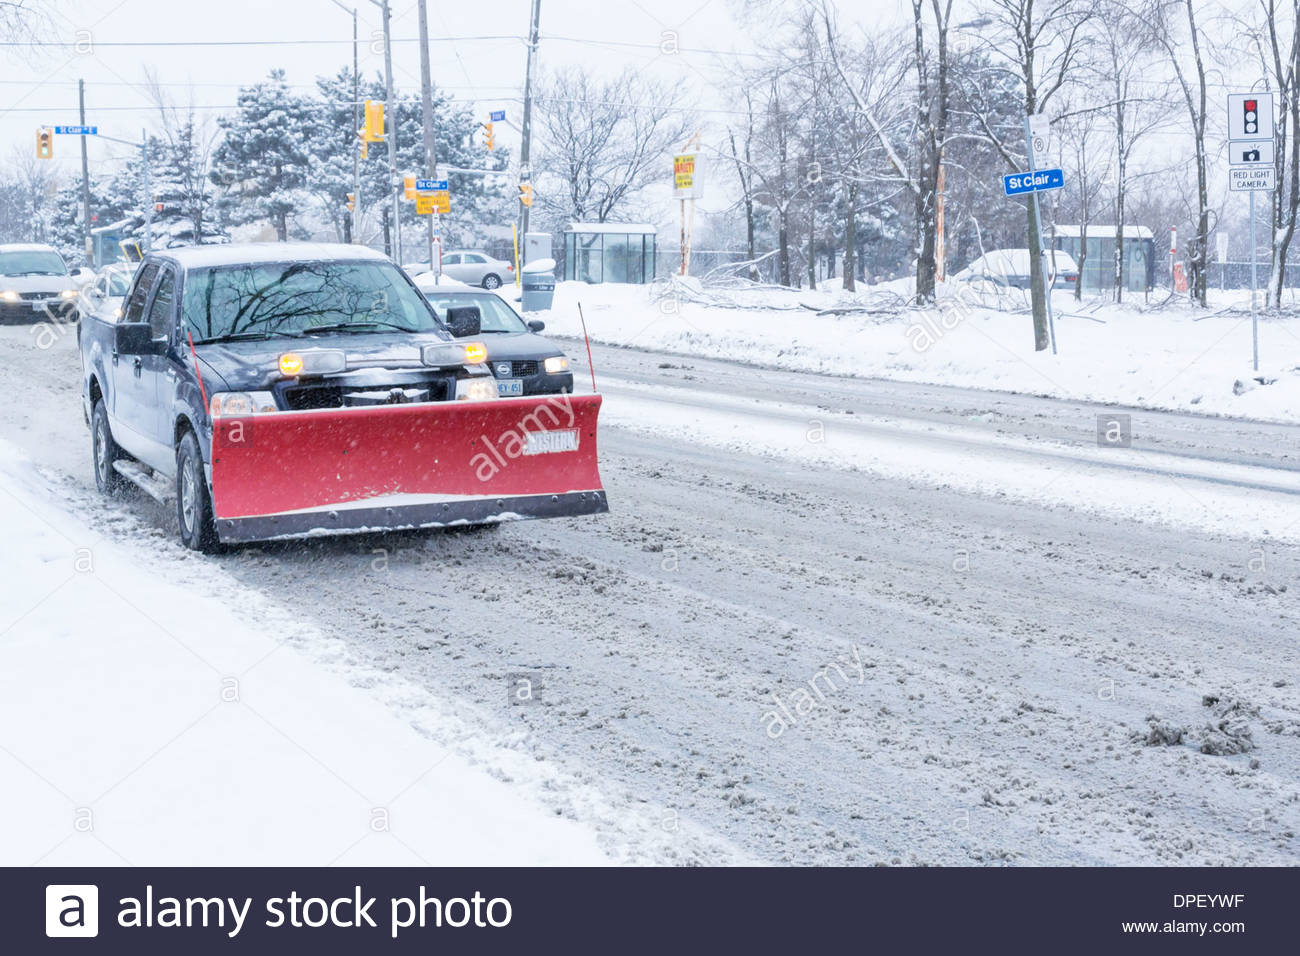 Snowplow on day so cold that salt ineffective in melting snow creating a slippery slush on road in Toronto Ontario Canada - Stock Image